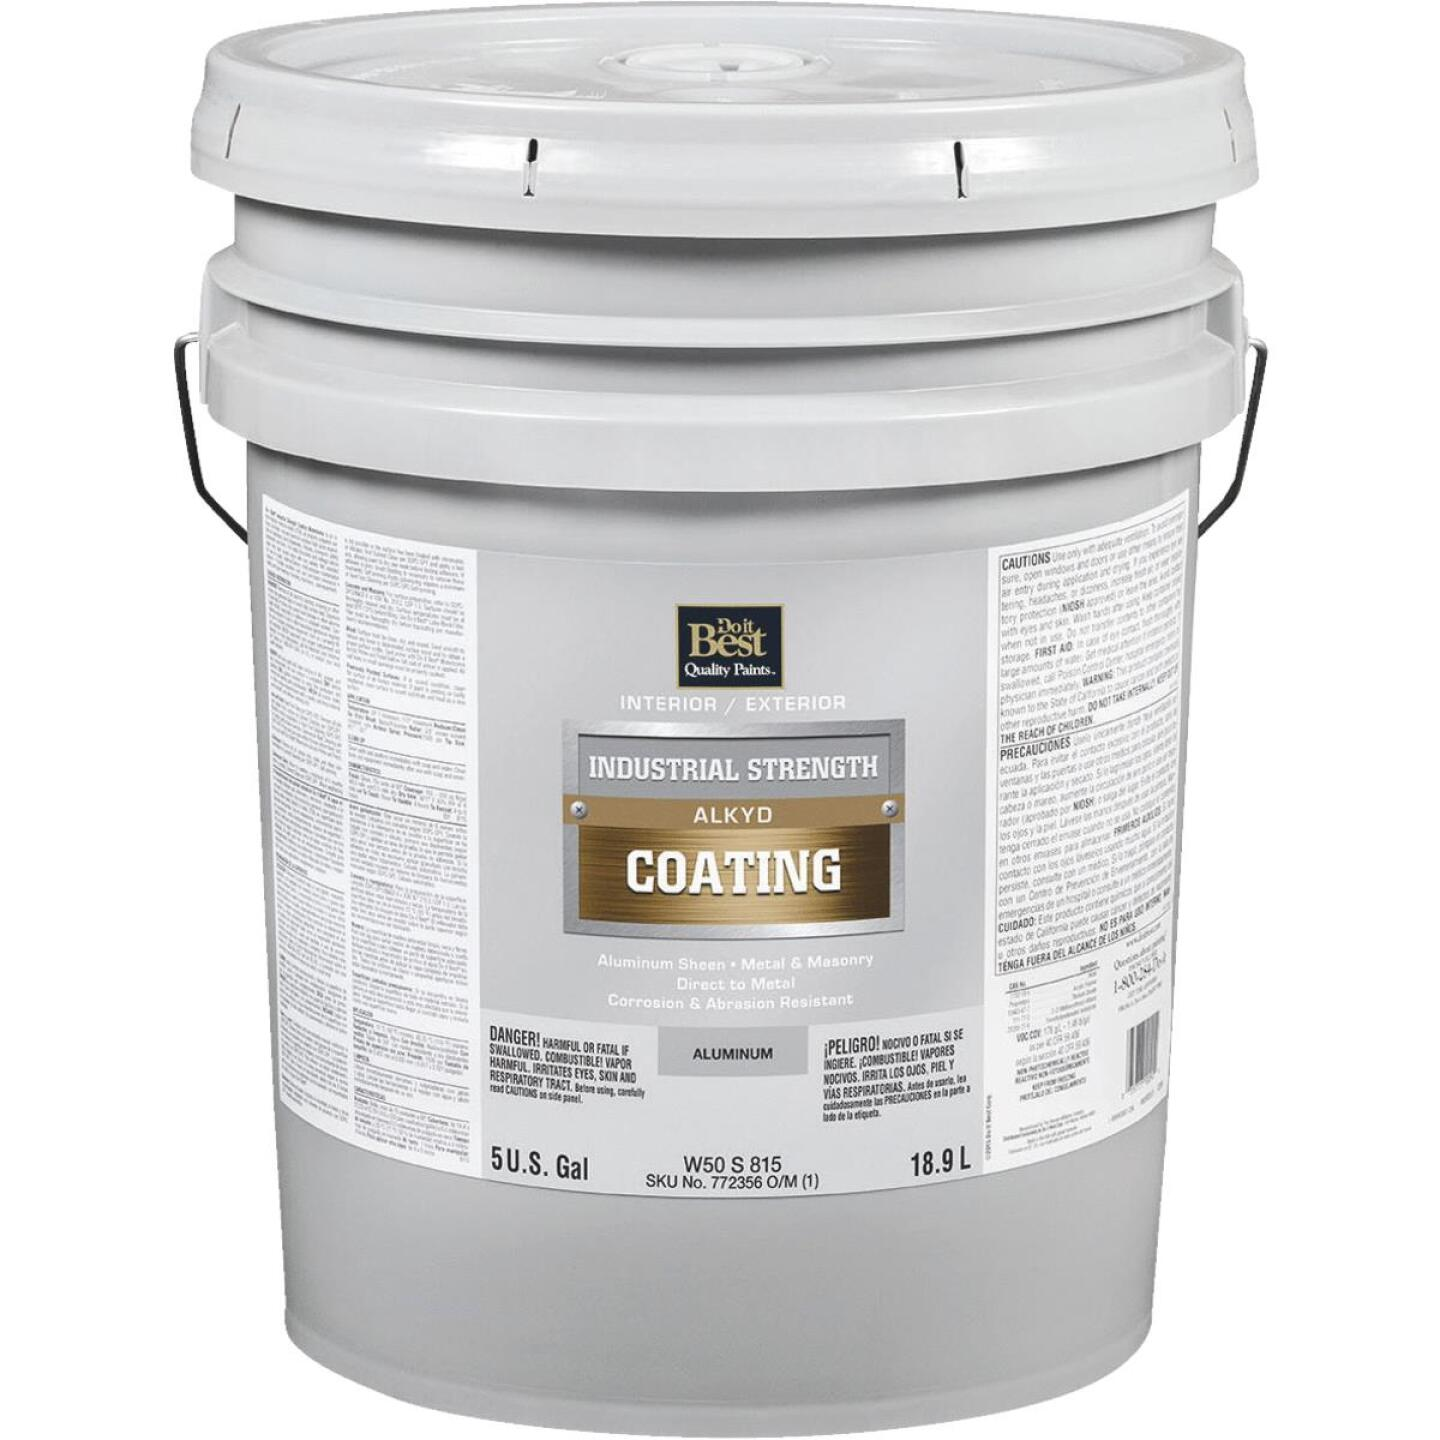 Do it Best Aluminum Alkyd Industrial Coating, 5 Gal. Image 1